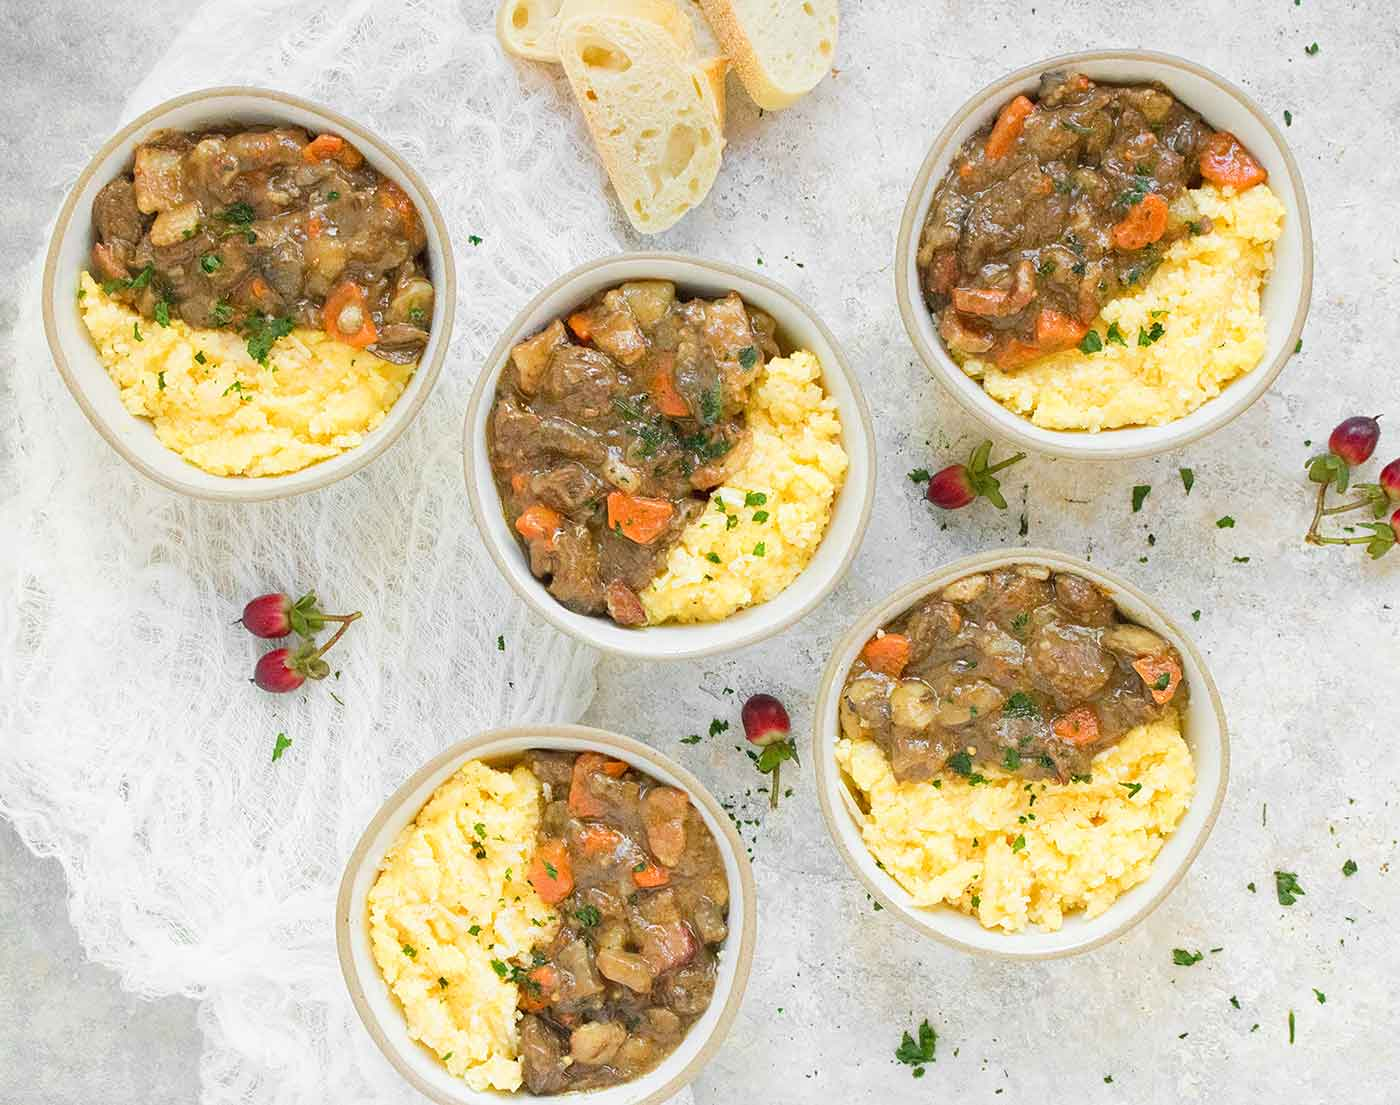 Five bowls of Dijon Beef Stew with Cheese Grits